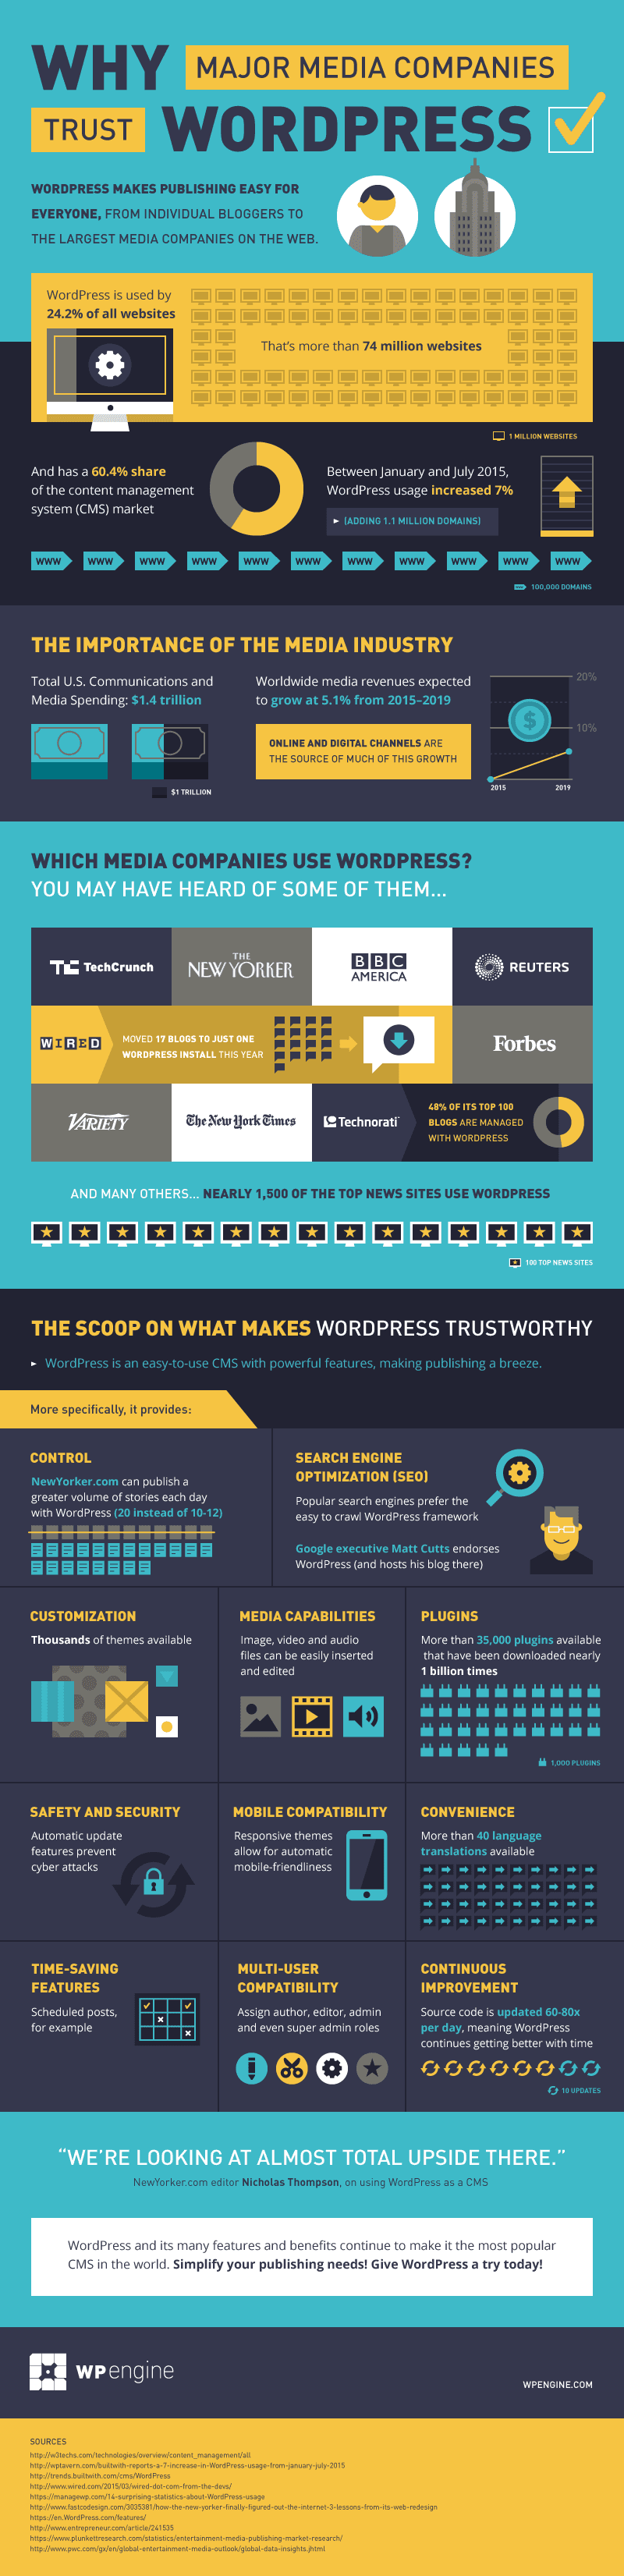 Why Major Media Companies Trust WordPress [Infographic]